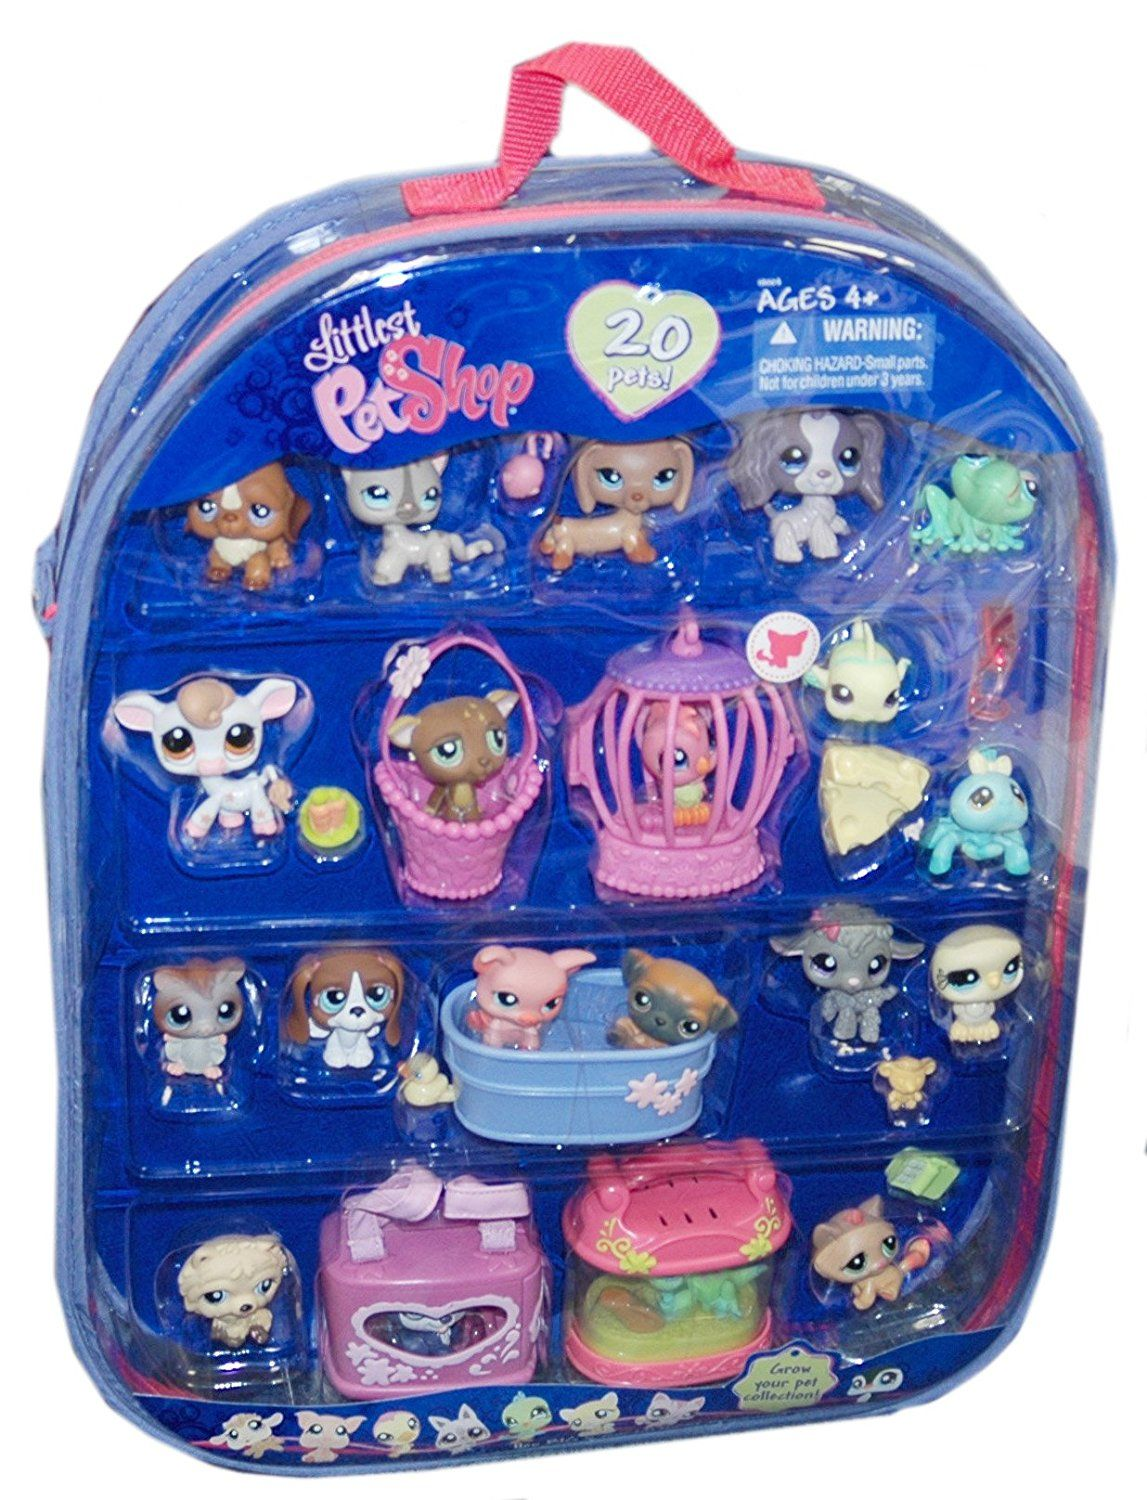 Amazon Com Littlest Pet Shop Exclusive 20 Pet Set 20 Pets Accessories Carry Case Toys Games Lps Toys Pet Shop Lps Pets